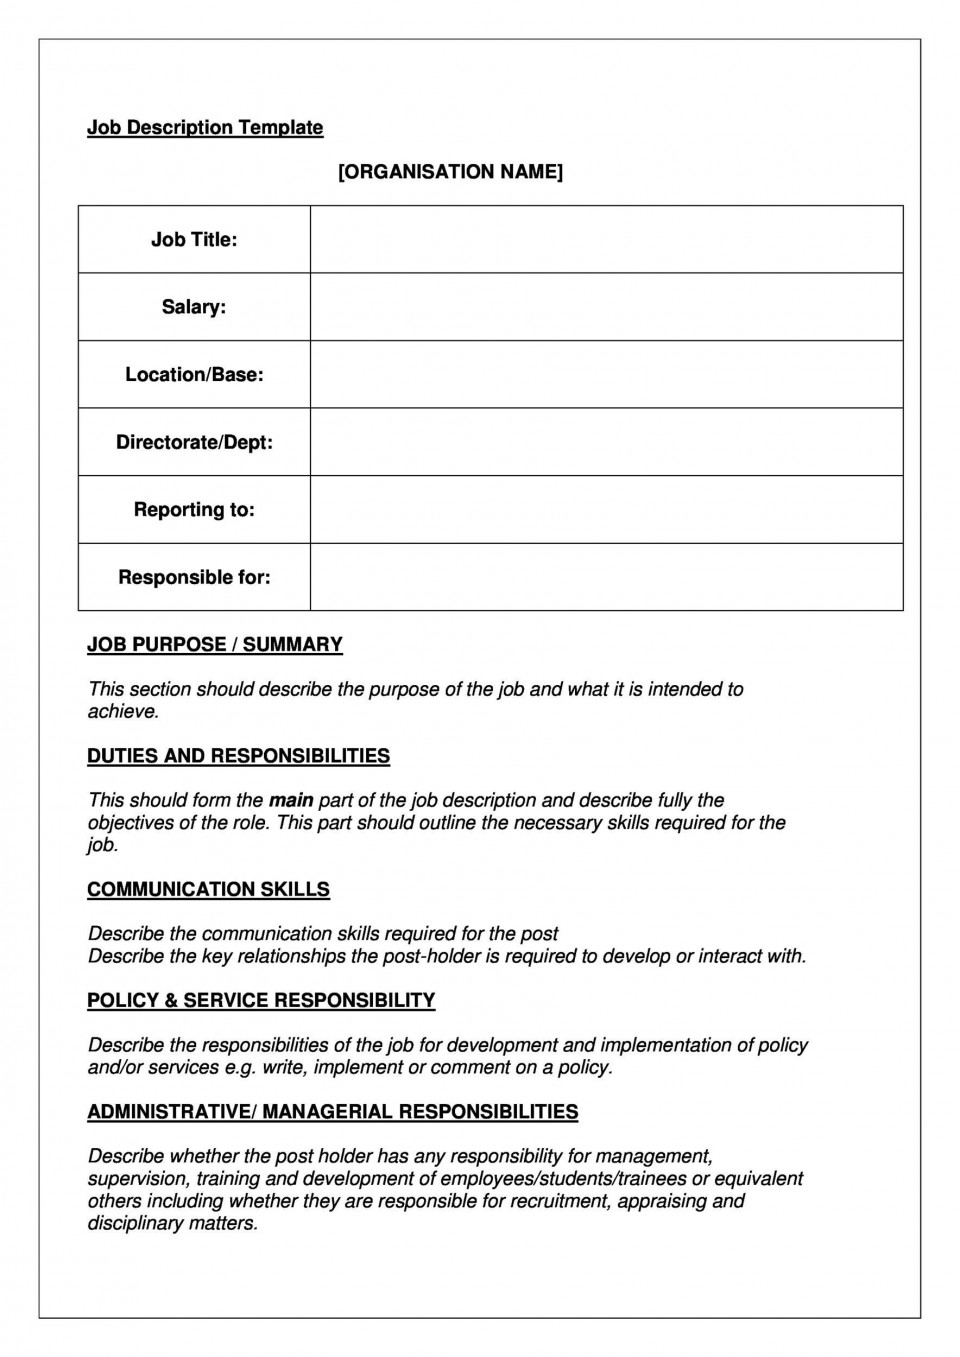 005 Stupendou Blank Job Description Template Picture  Ks2 Word Free Printable960